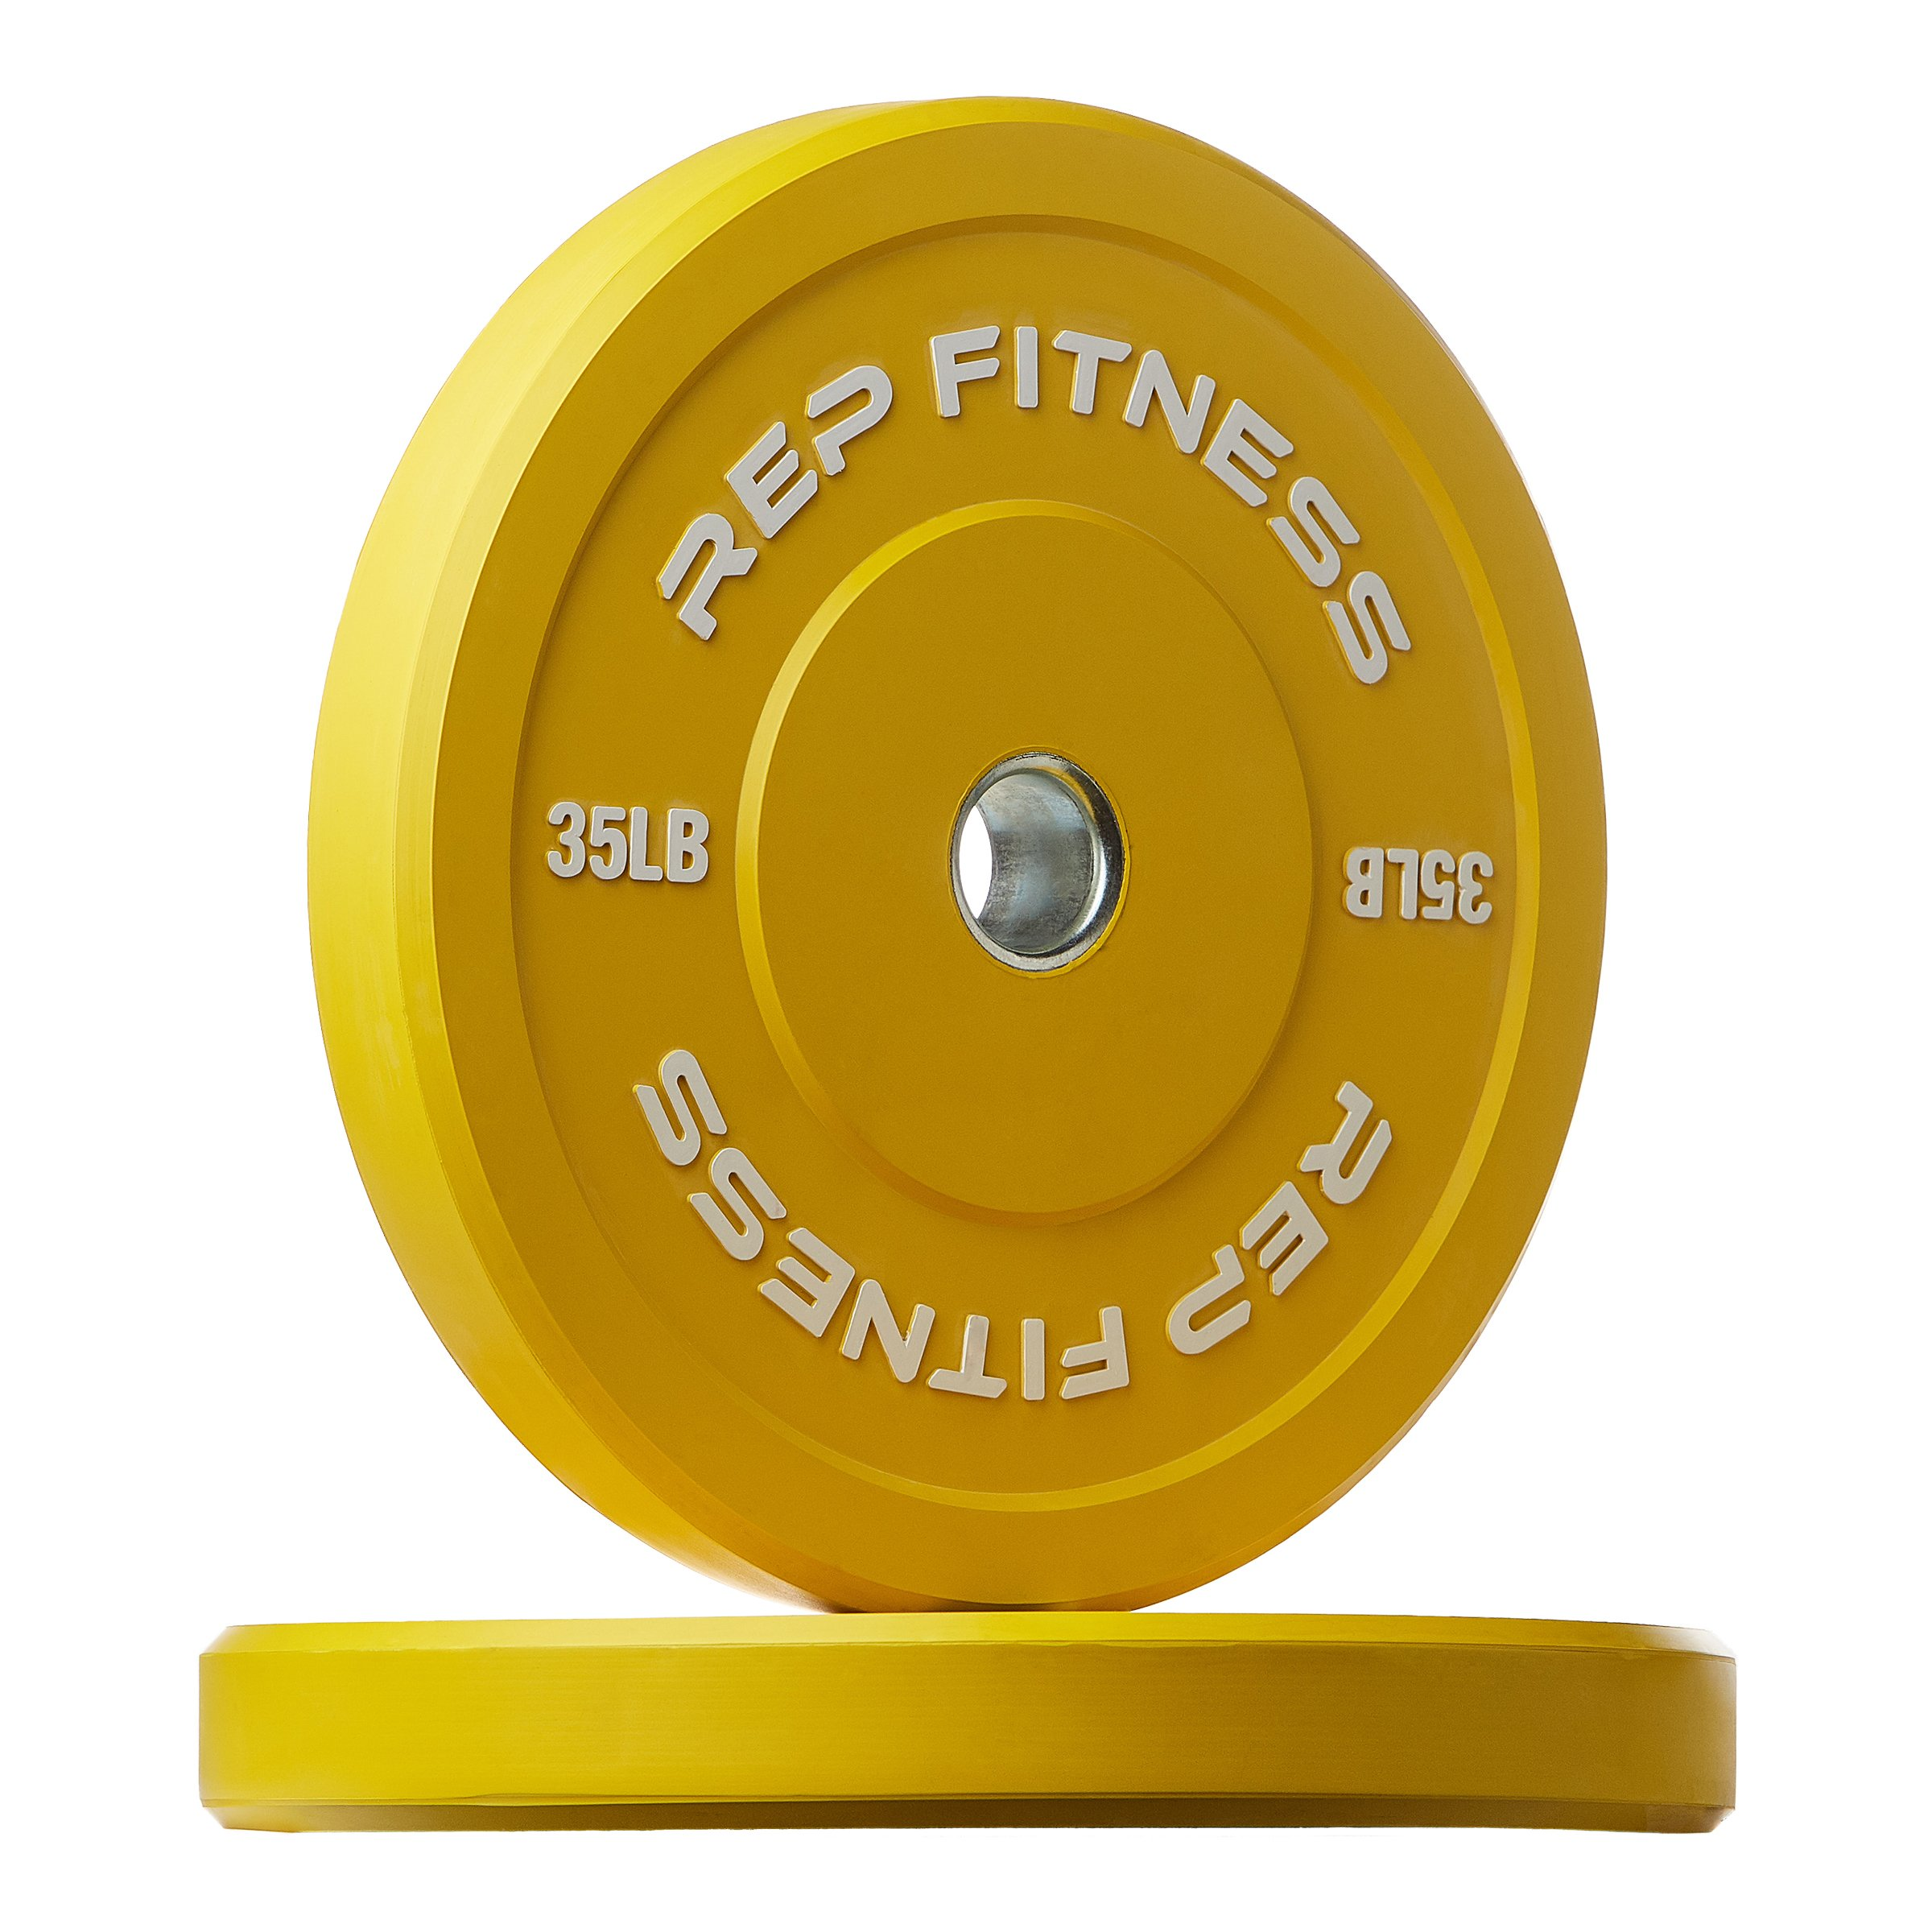 Rep Color Bumper Plates for Strength and Conditioning Workouts and Weightlifting, 35 lb Pair by Rep Fitness (Image #1)